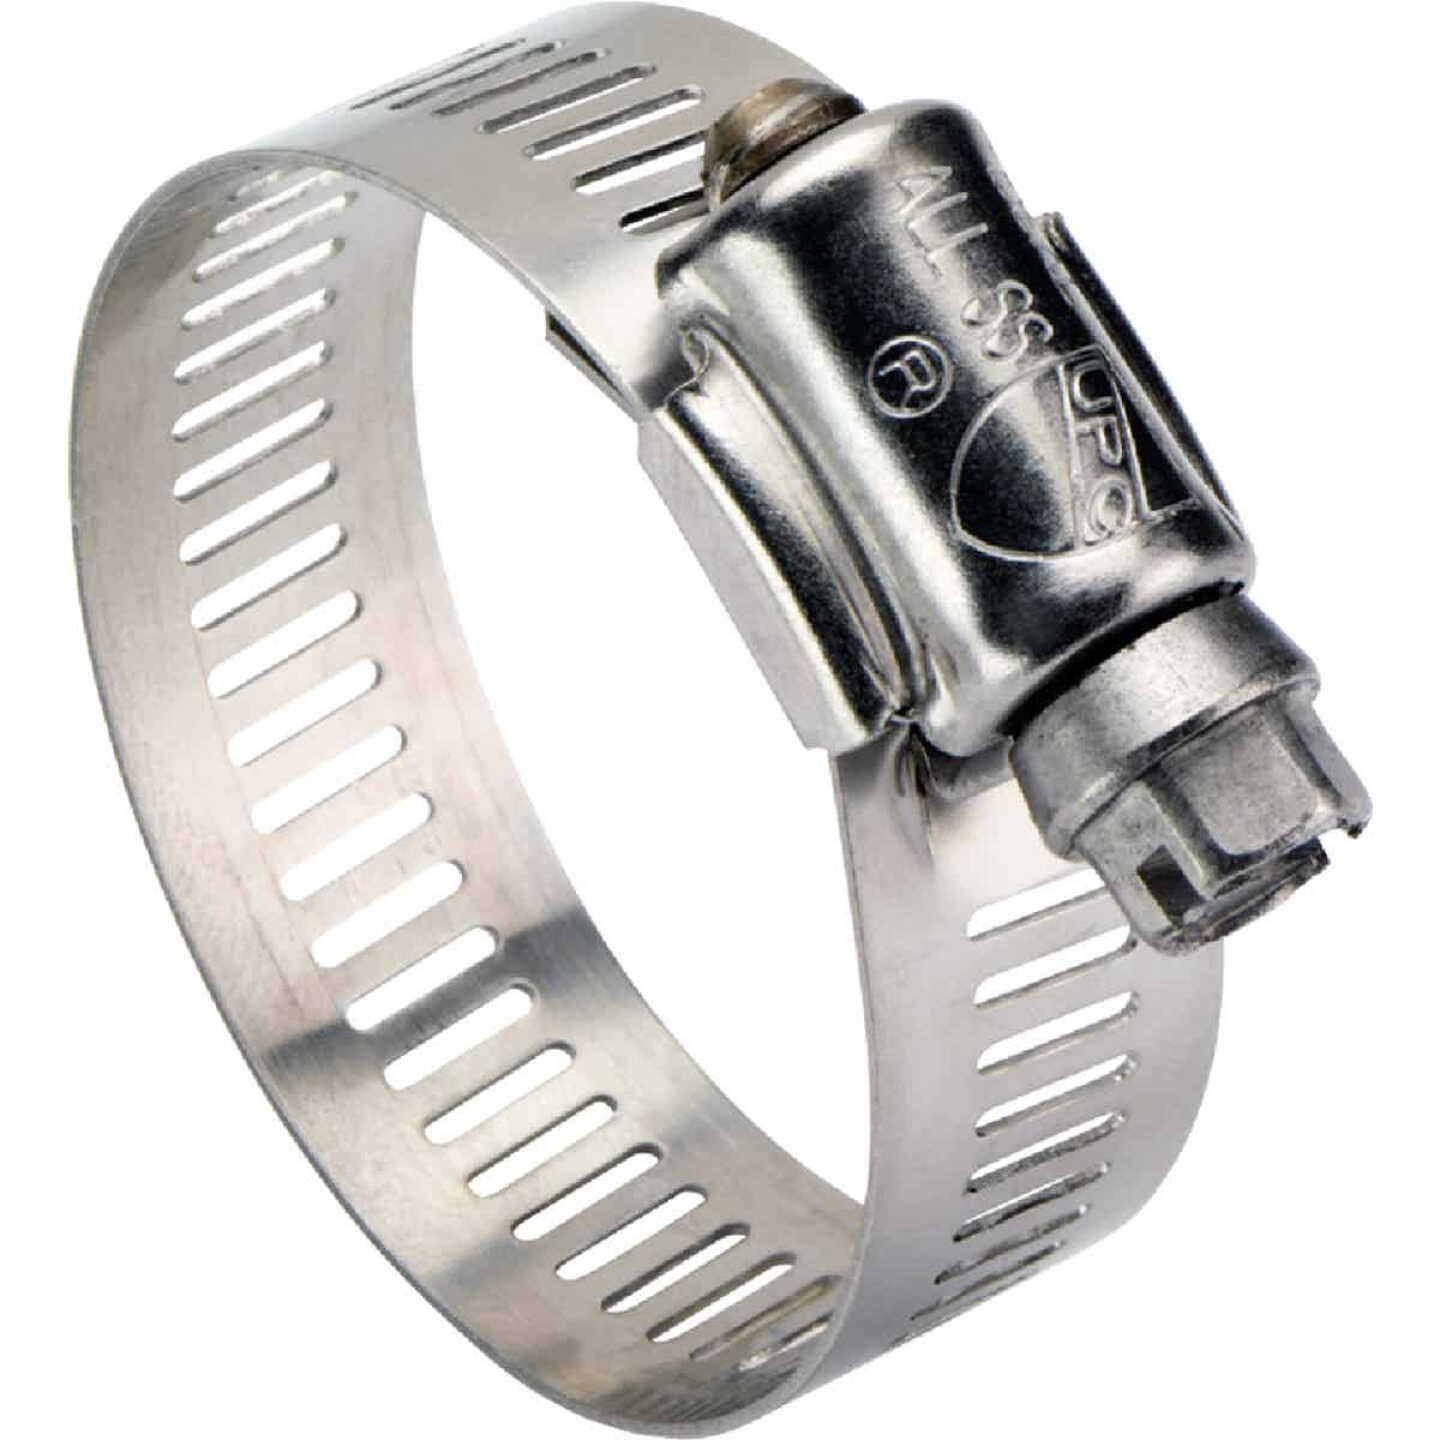 Ideal 4-1/2 In. - 6-1/2 In. All Stainless Steel Marine-Grade Hose Clamp Image 1